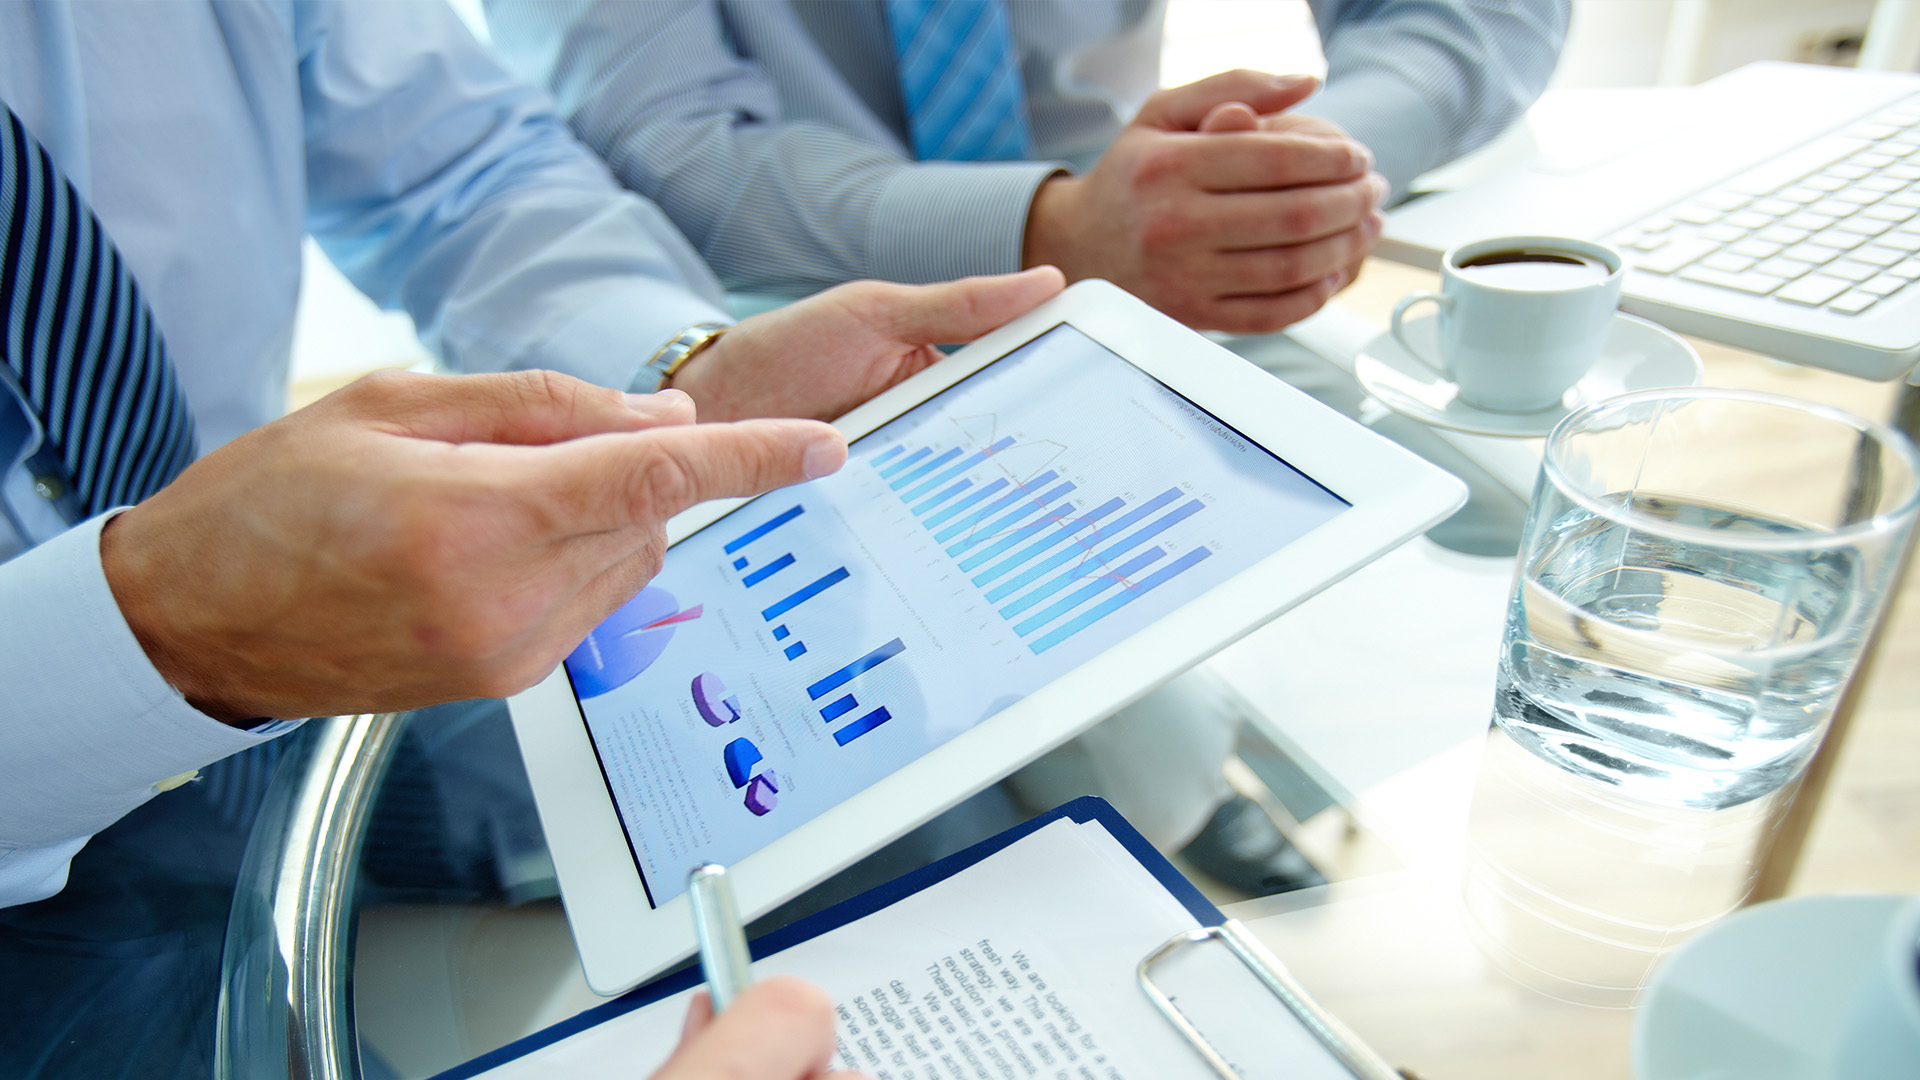 Misaligned corporate priorities can derail digitalization investments